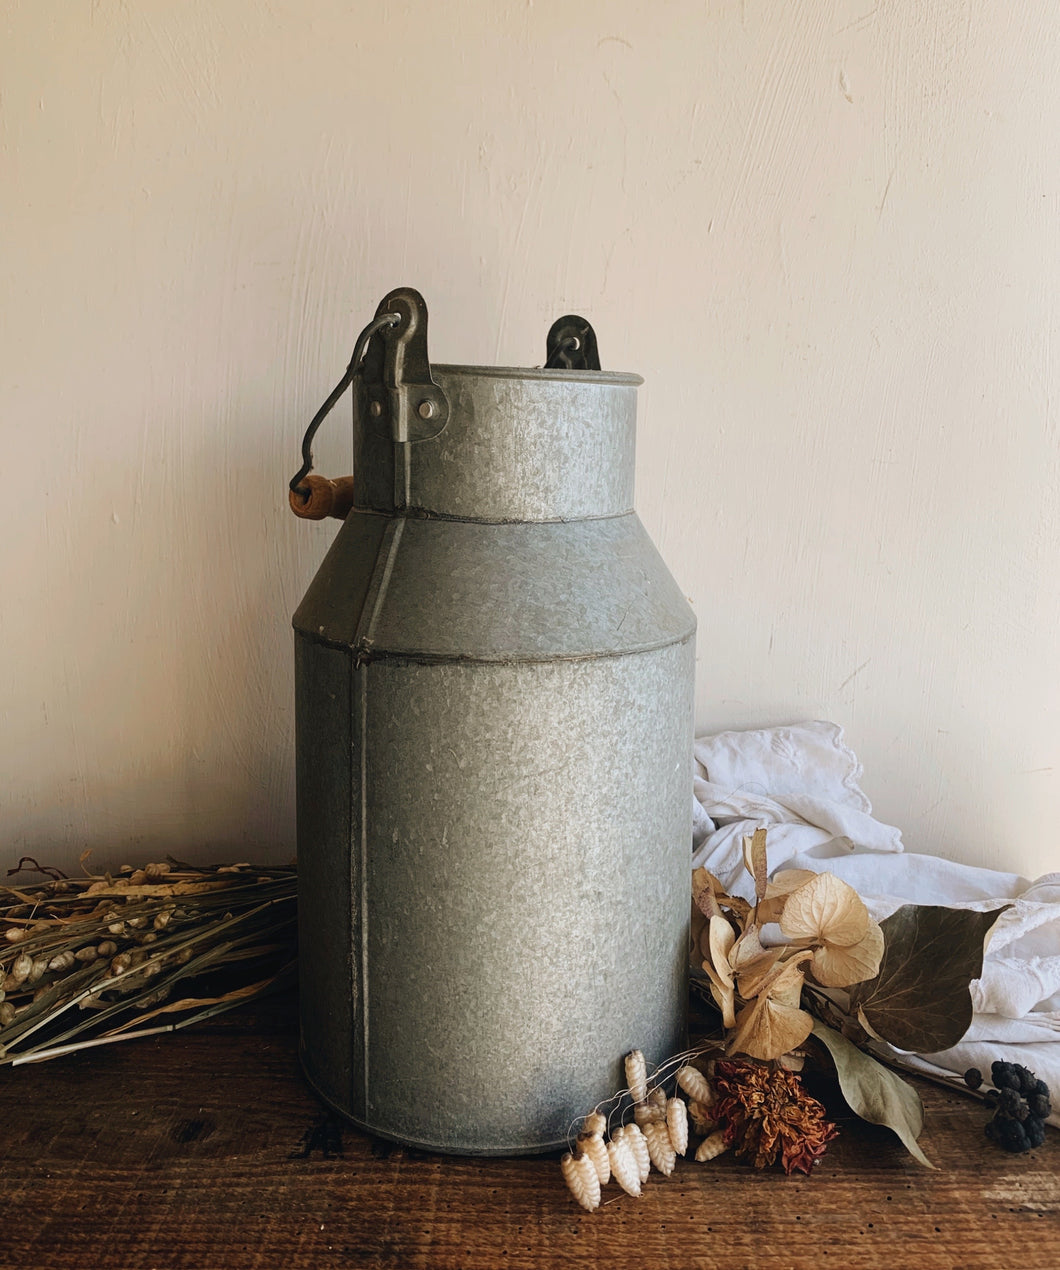 Vintage Rustic Milk Churn with Wooden Handle